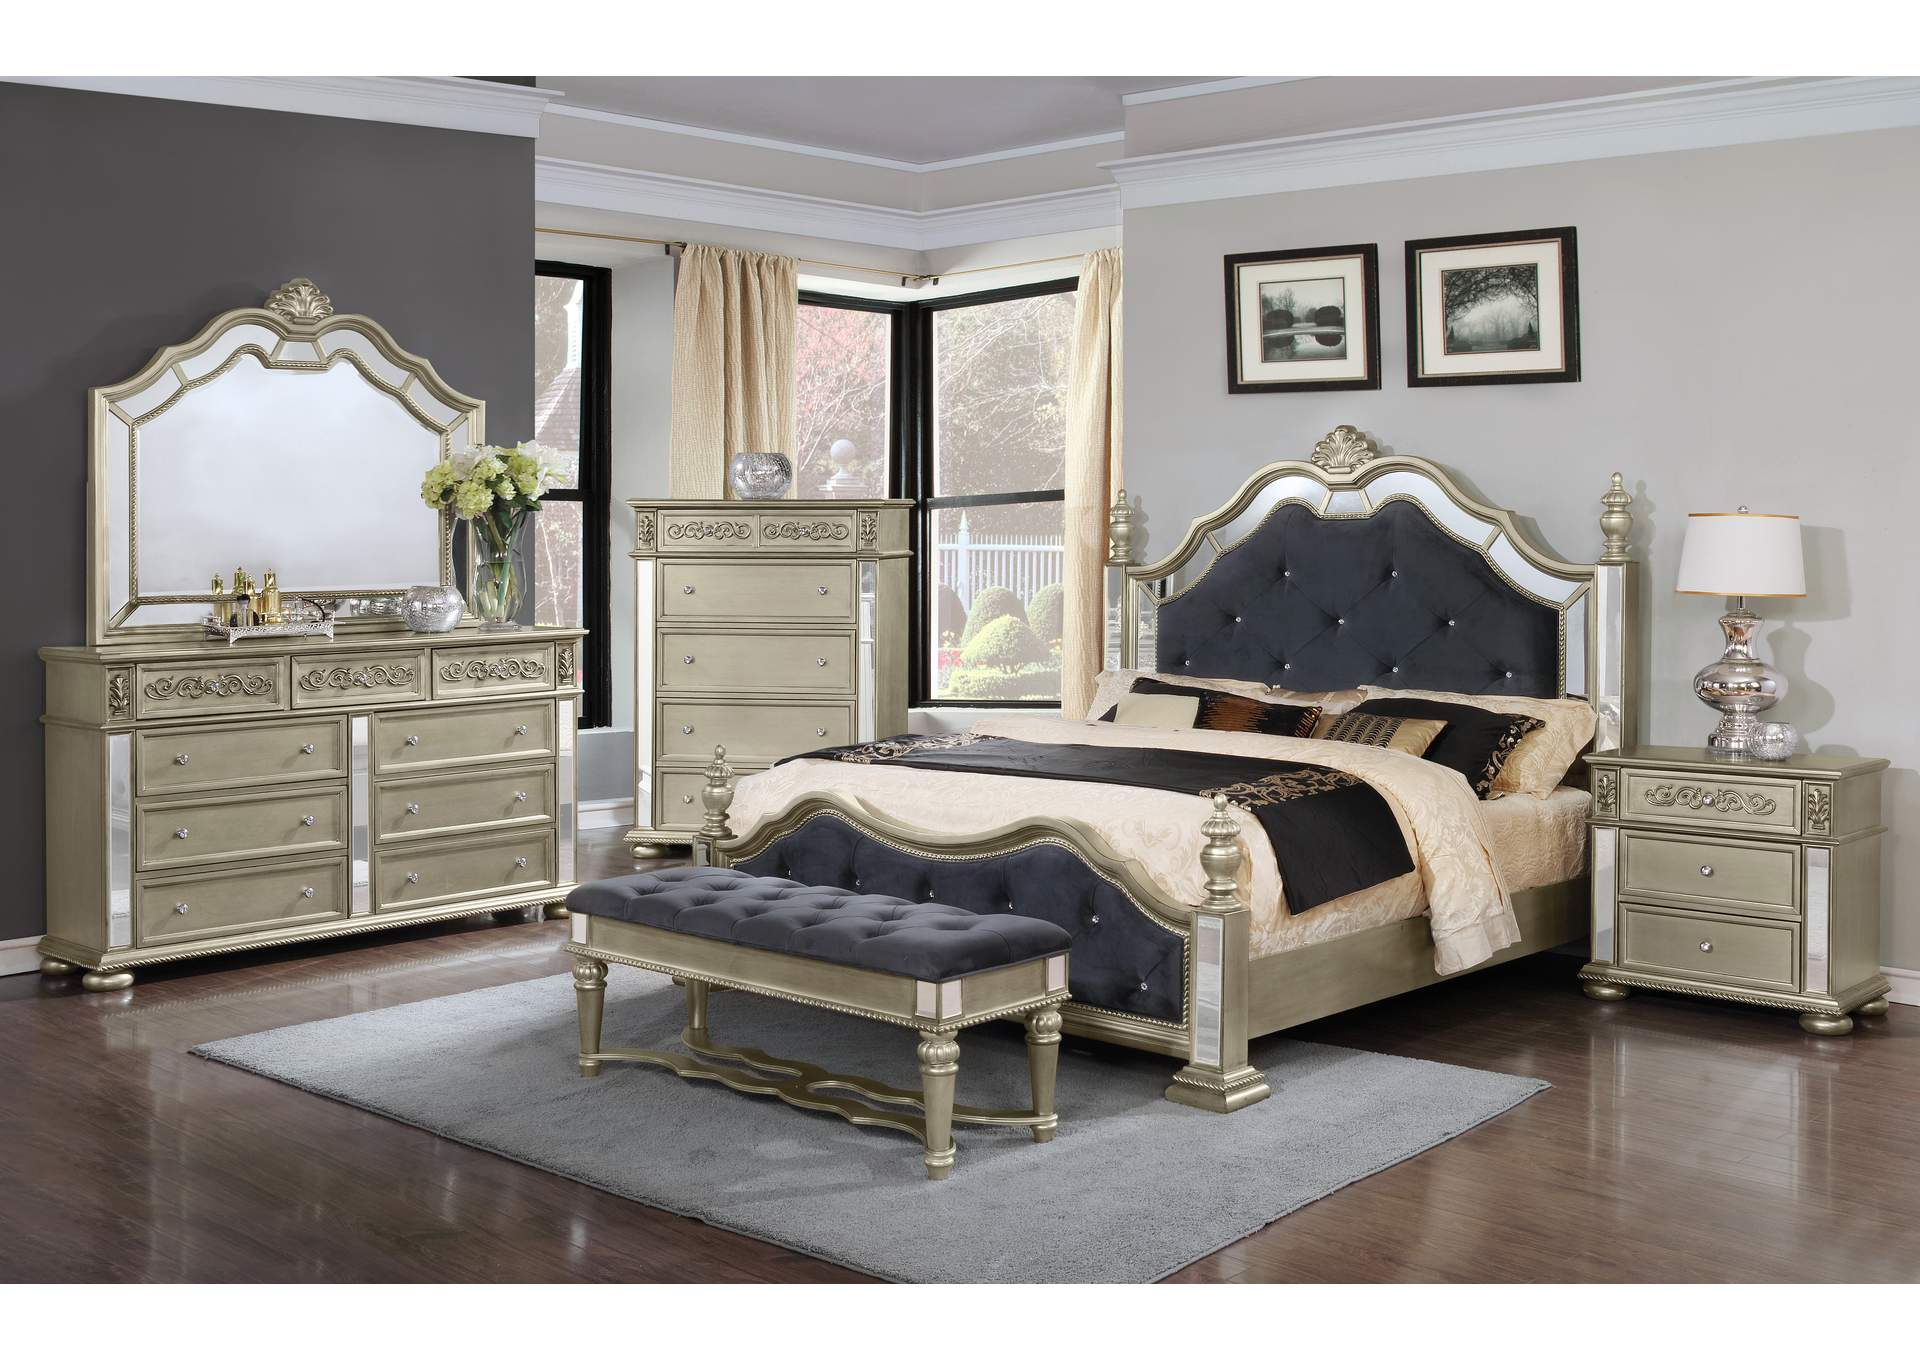 Silver Panel Queen 5 Piece Bedroom Set W/ Nightstand, Chest, Dresser & Mirror,Global Trading